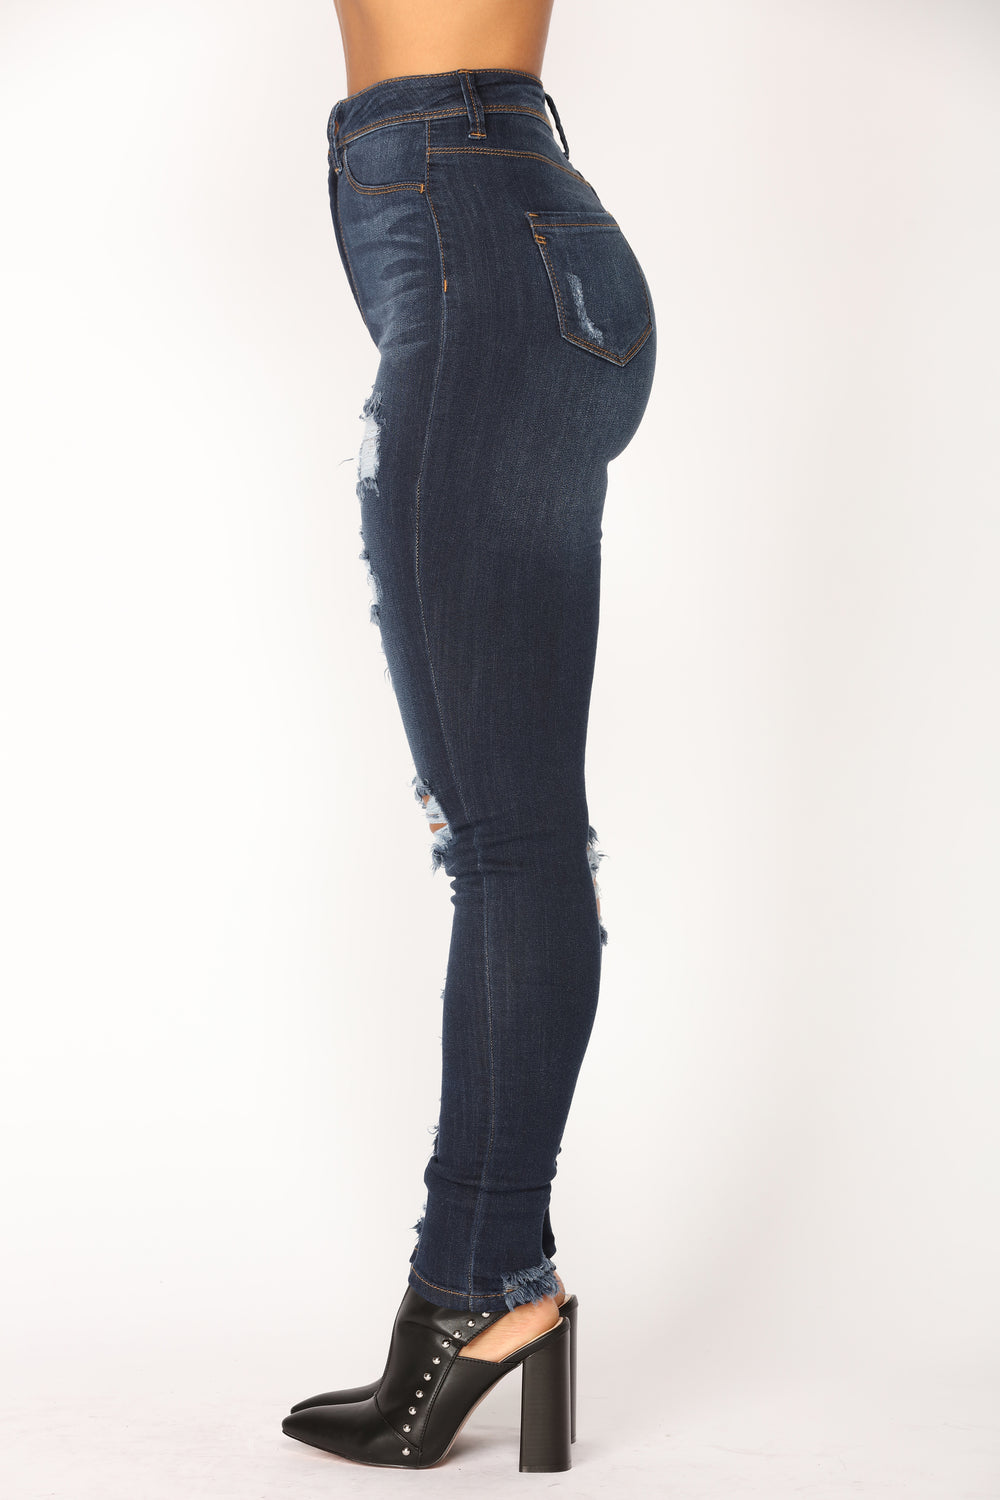 Blue My Mind Skinny Jeans - Dark Denim